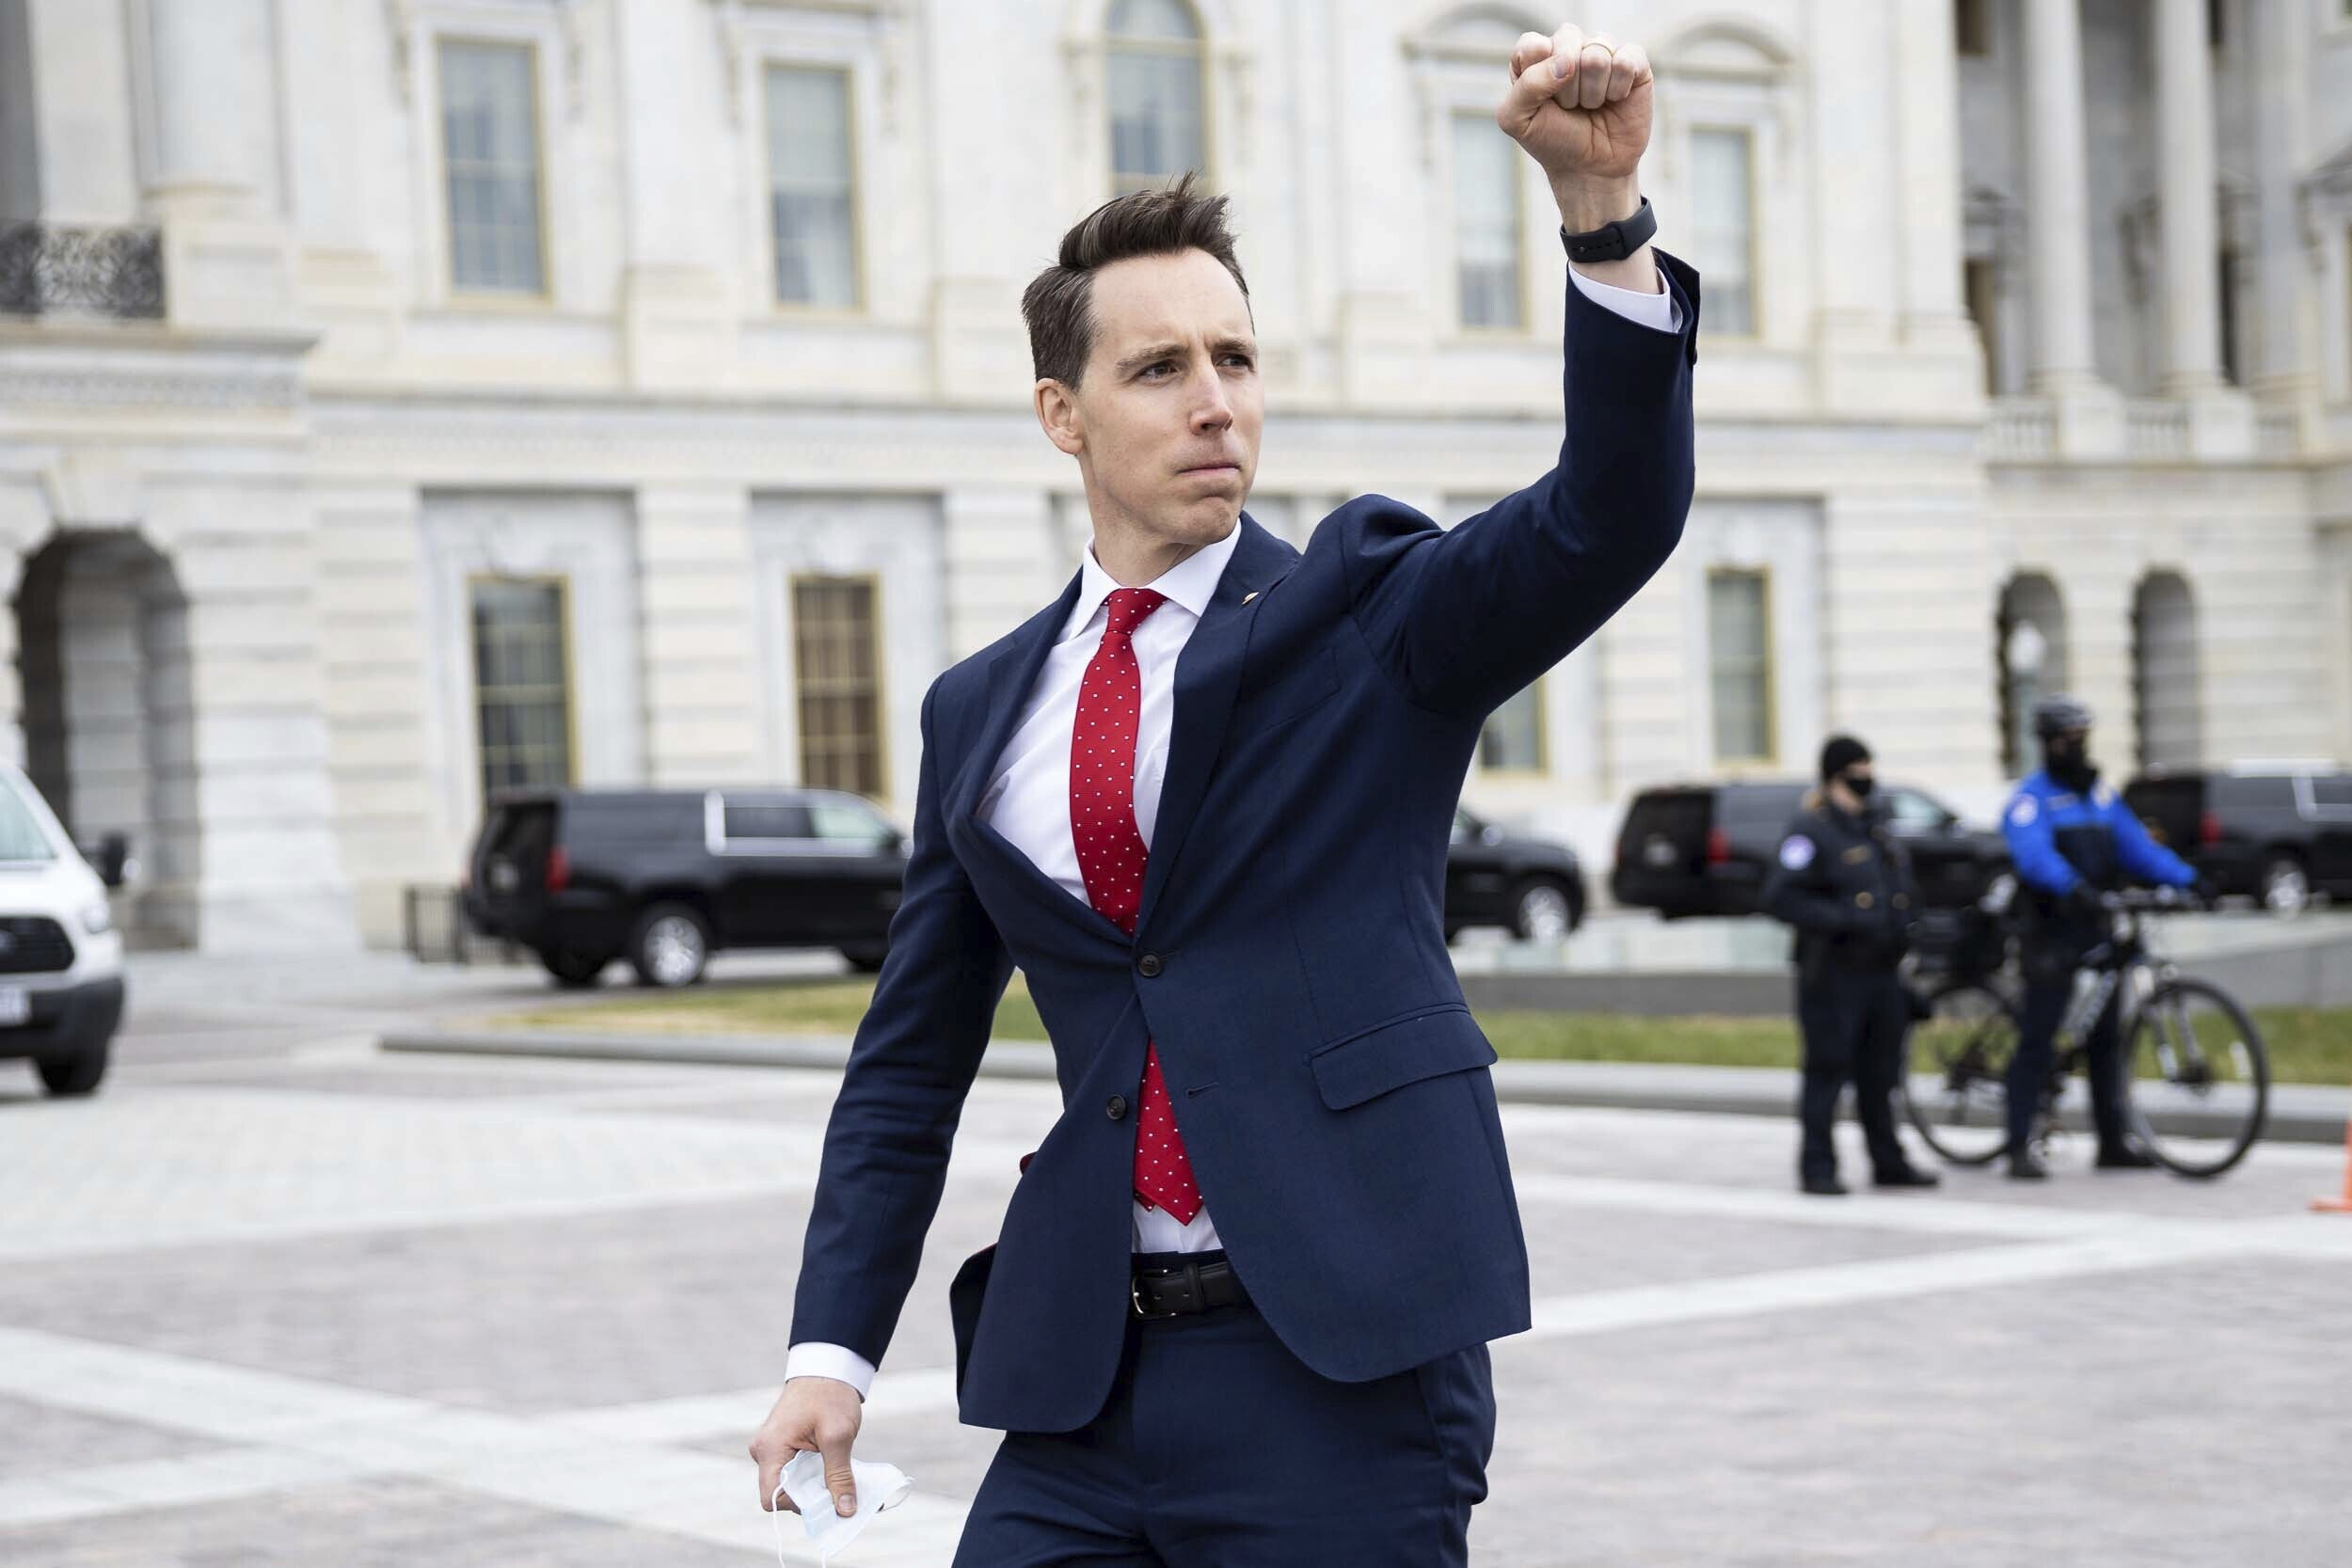 Senator Josh Hawley giving clenched fist salute to rioters on January 6